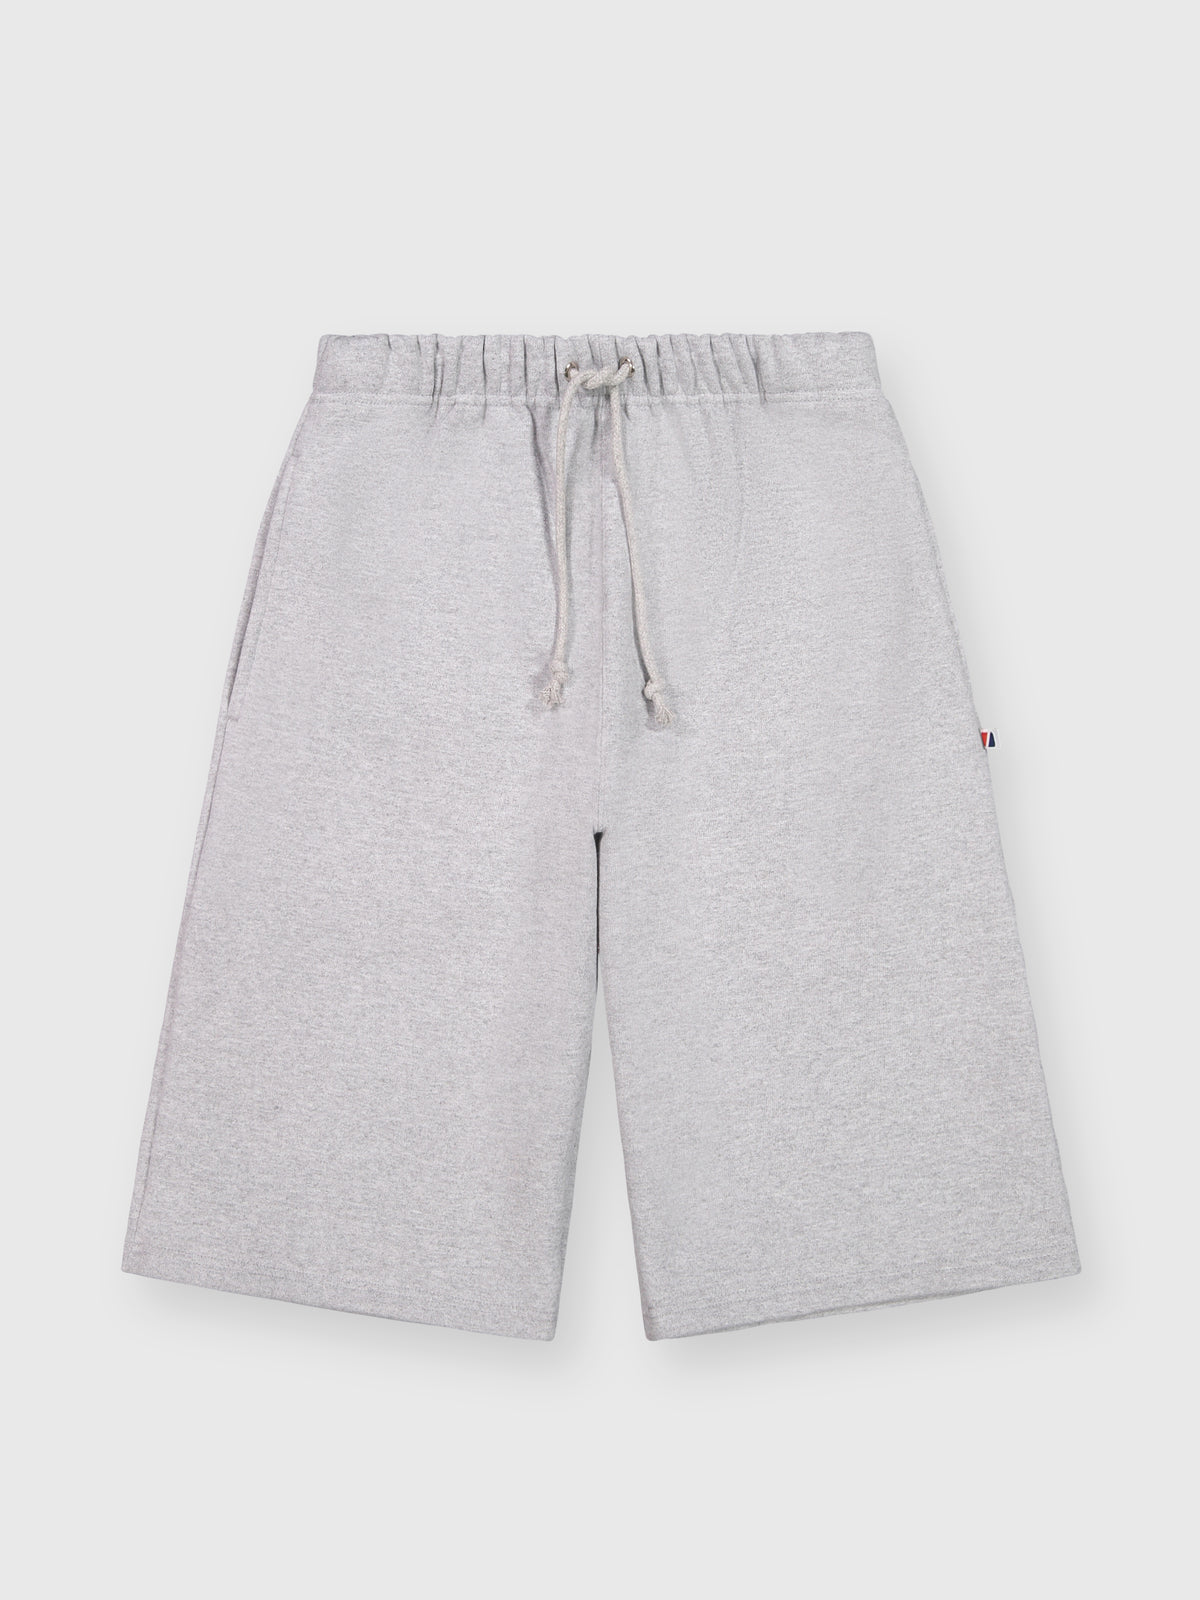 Classic Sweatshorts - Heather Grey